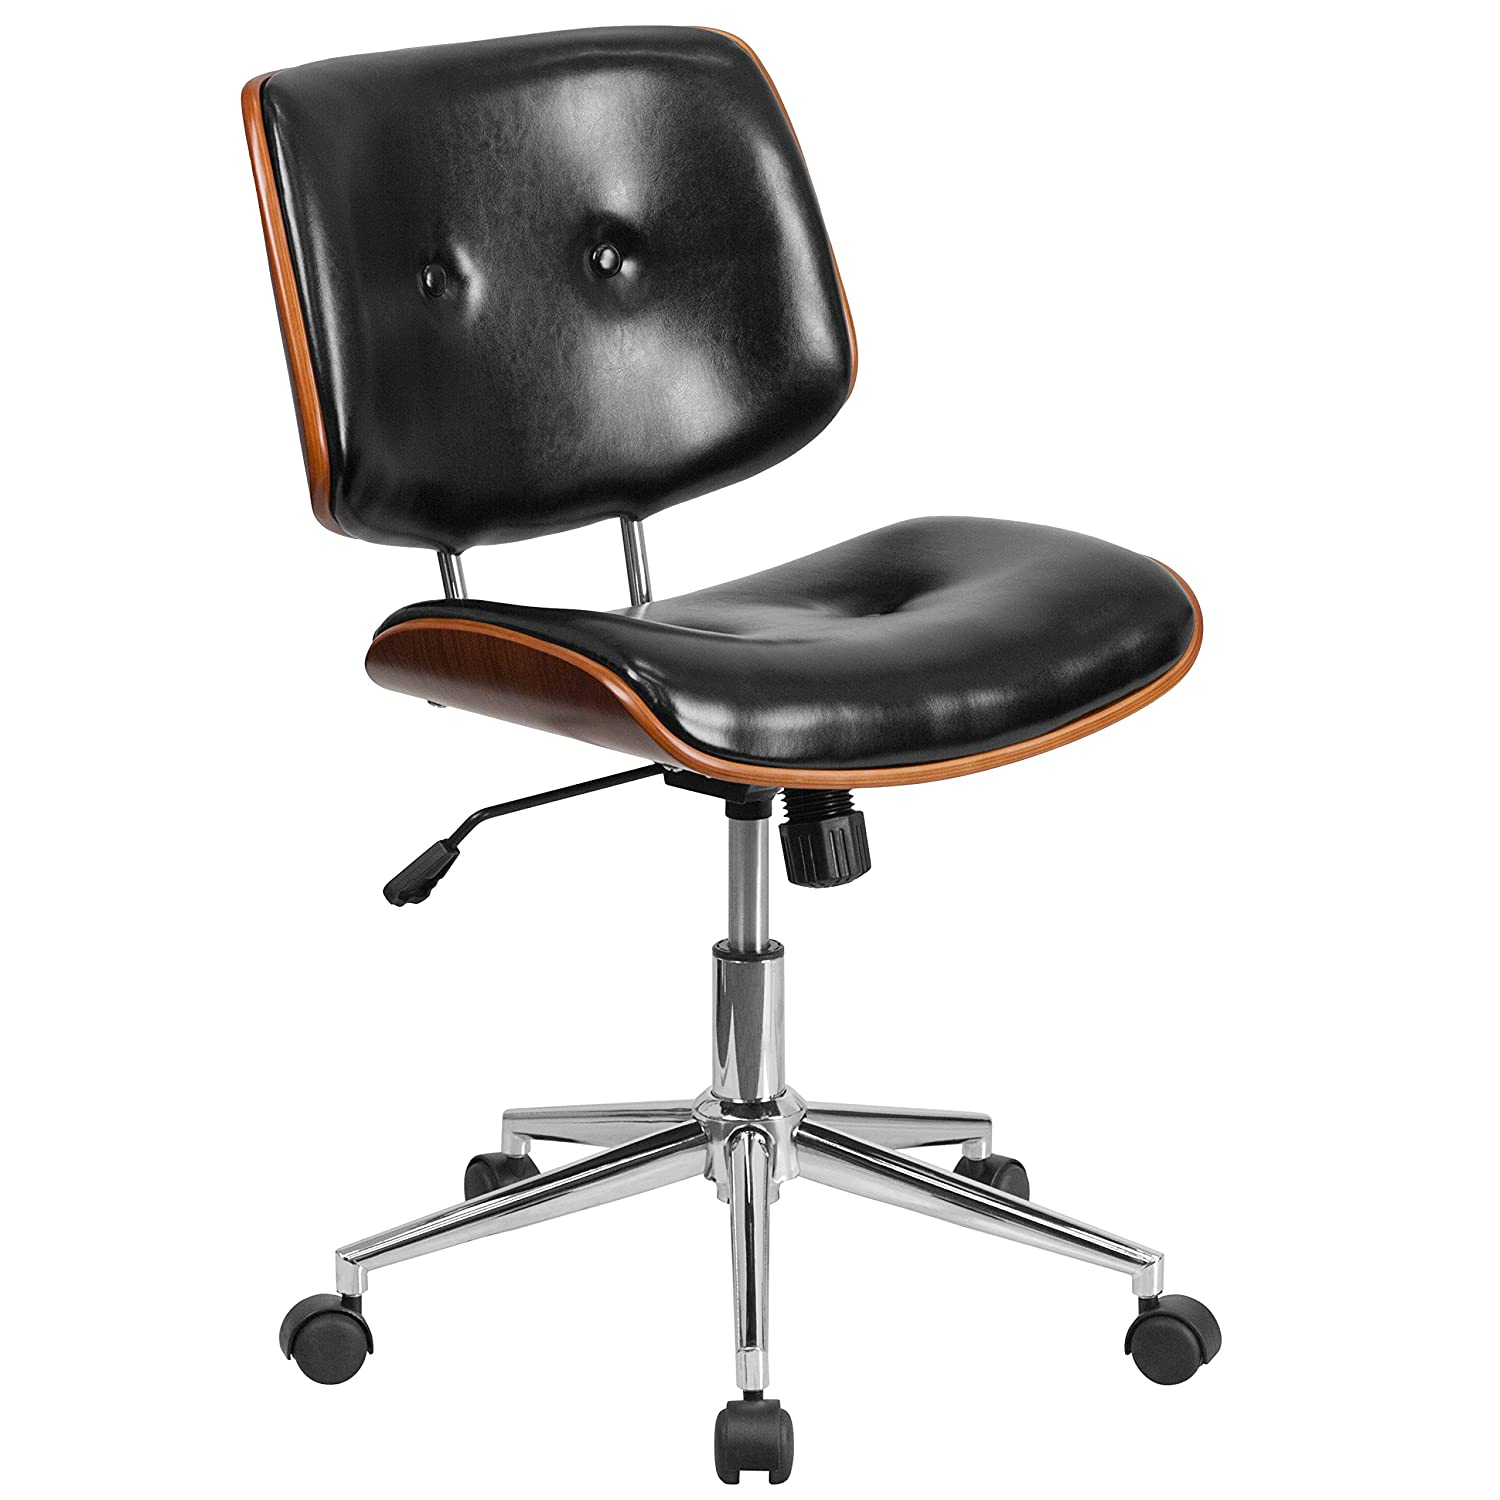 Official Website Us Fashion Mid-back Height-adjustable Armless Basic Faux Leather Computer Studio Task Office Chair With 360 Degree Swivel Office Furniture